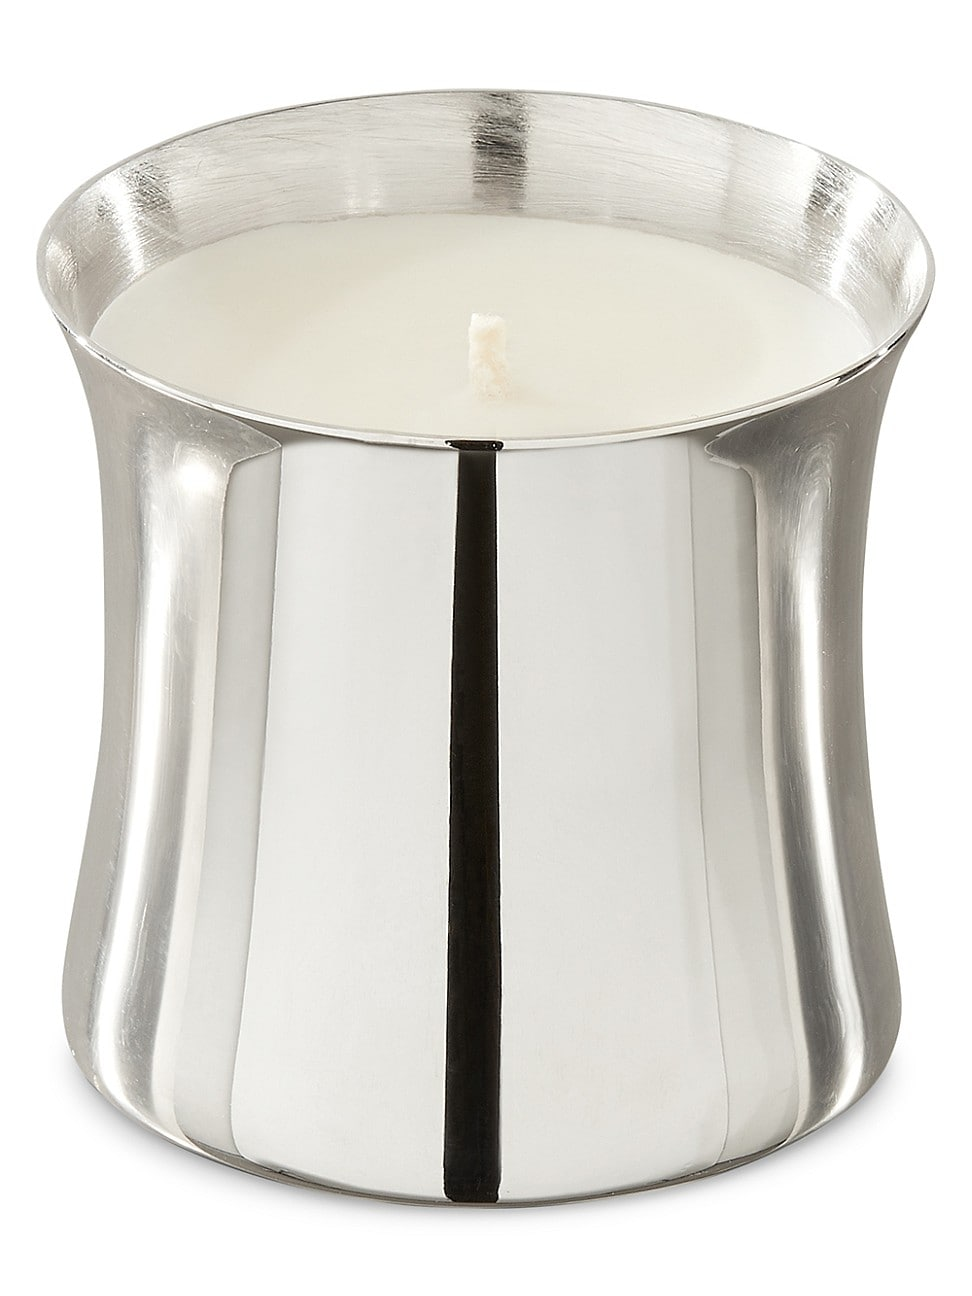 Tom Dixon Eclectic Travel-size Royalty Candle